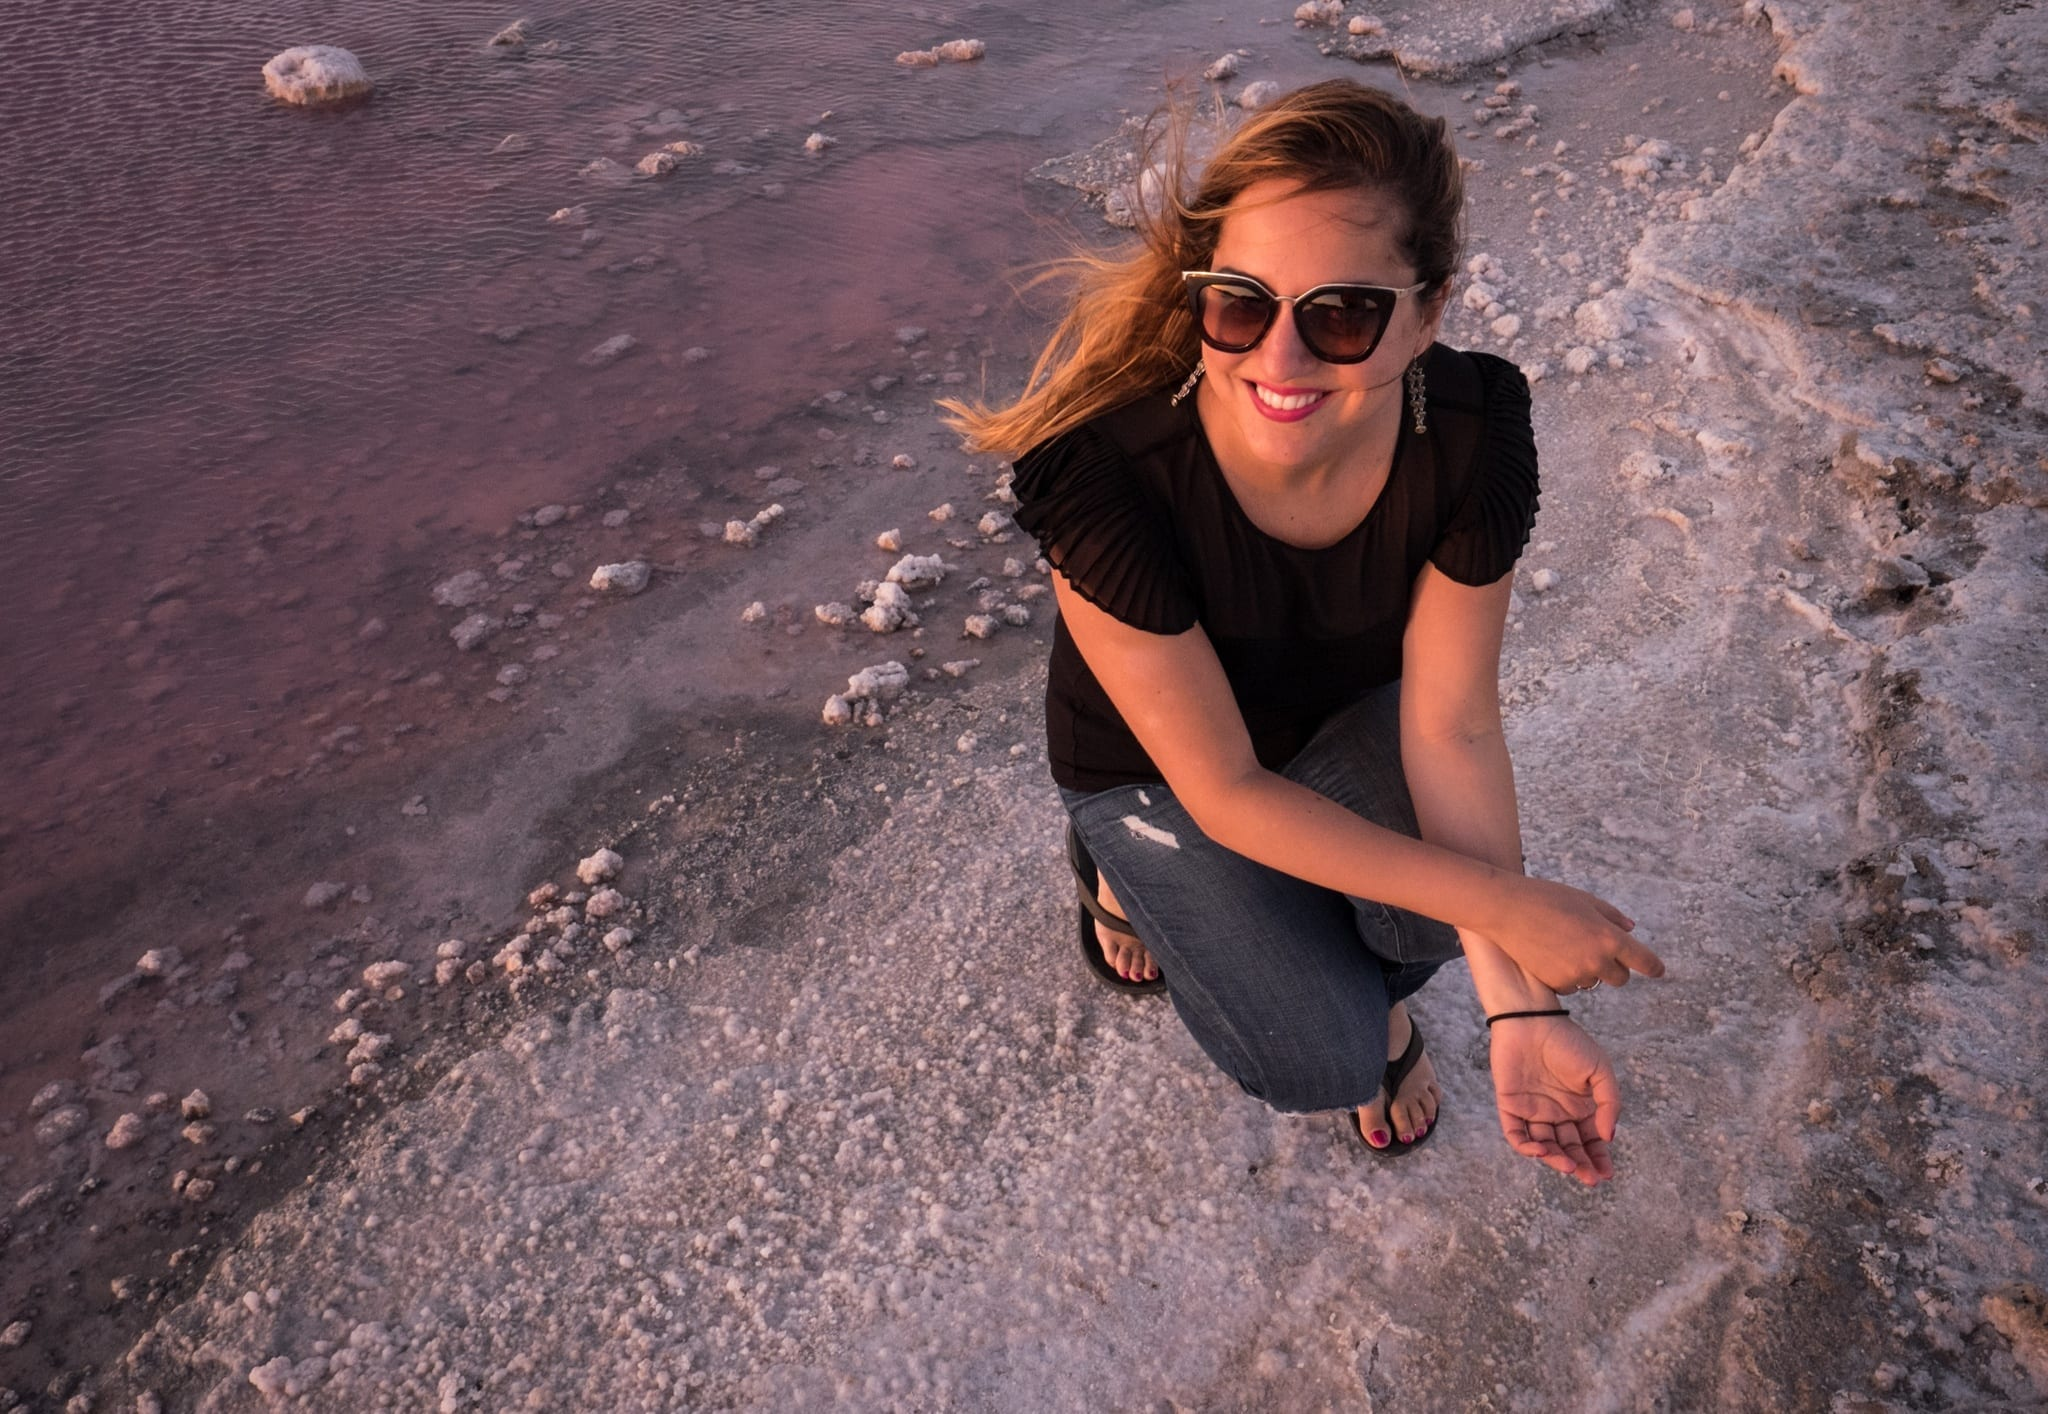 Kate at Hutt Lagoon Pink Lake, Western Australia